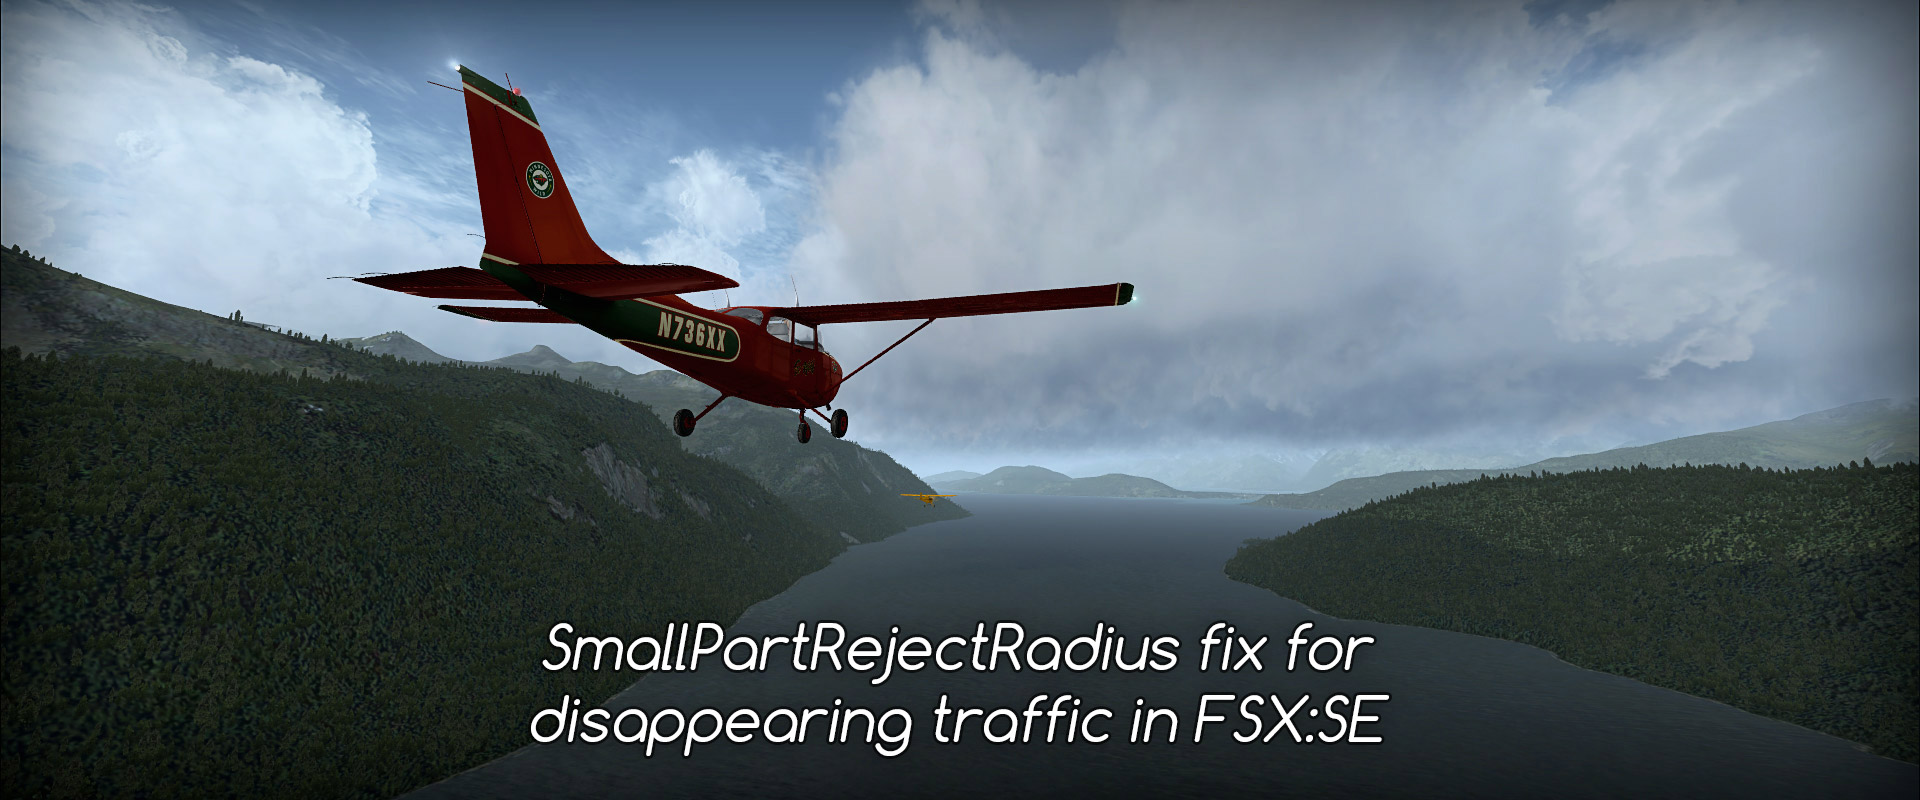 SmallPartRejectRadius - fix disappearing traffic in FSX